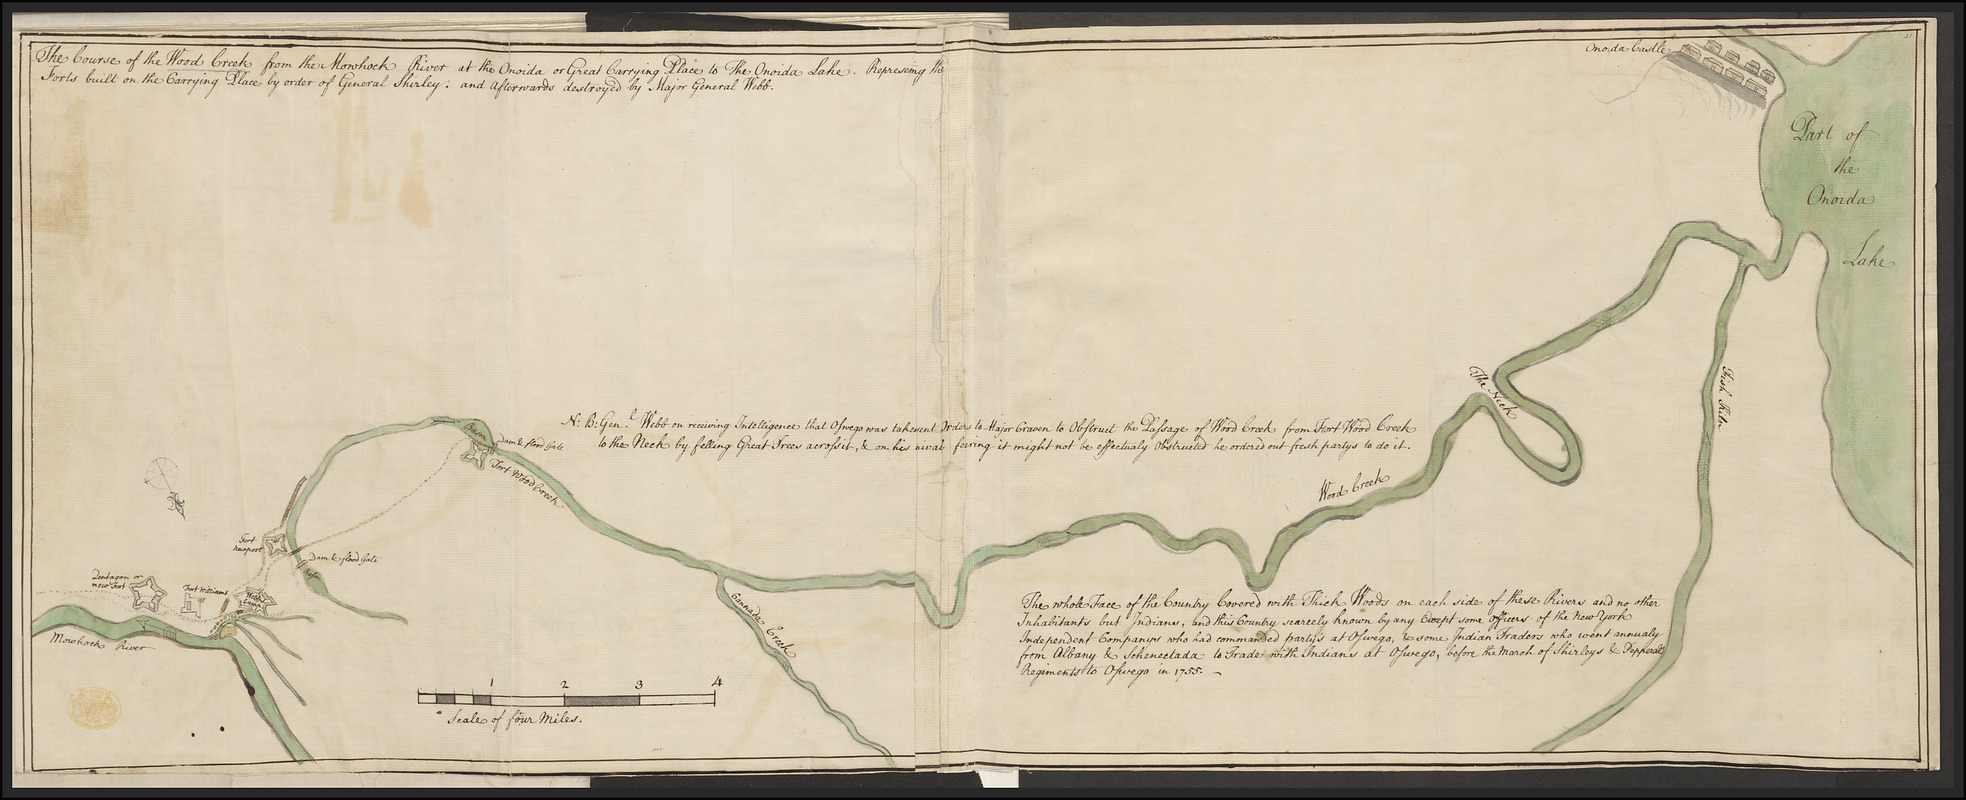 The Course of the Wood Creek from the Mowhock River at the Onoida or Great Carrying Place to The Onoida Lake. Representing the Forts built on the Carrying Place by order of General Shirley: and Afterwards destroyed by Major General Webb